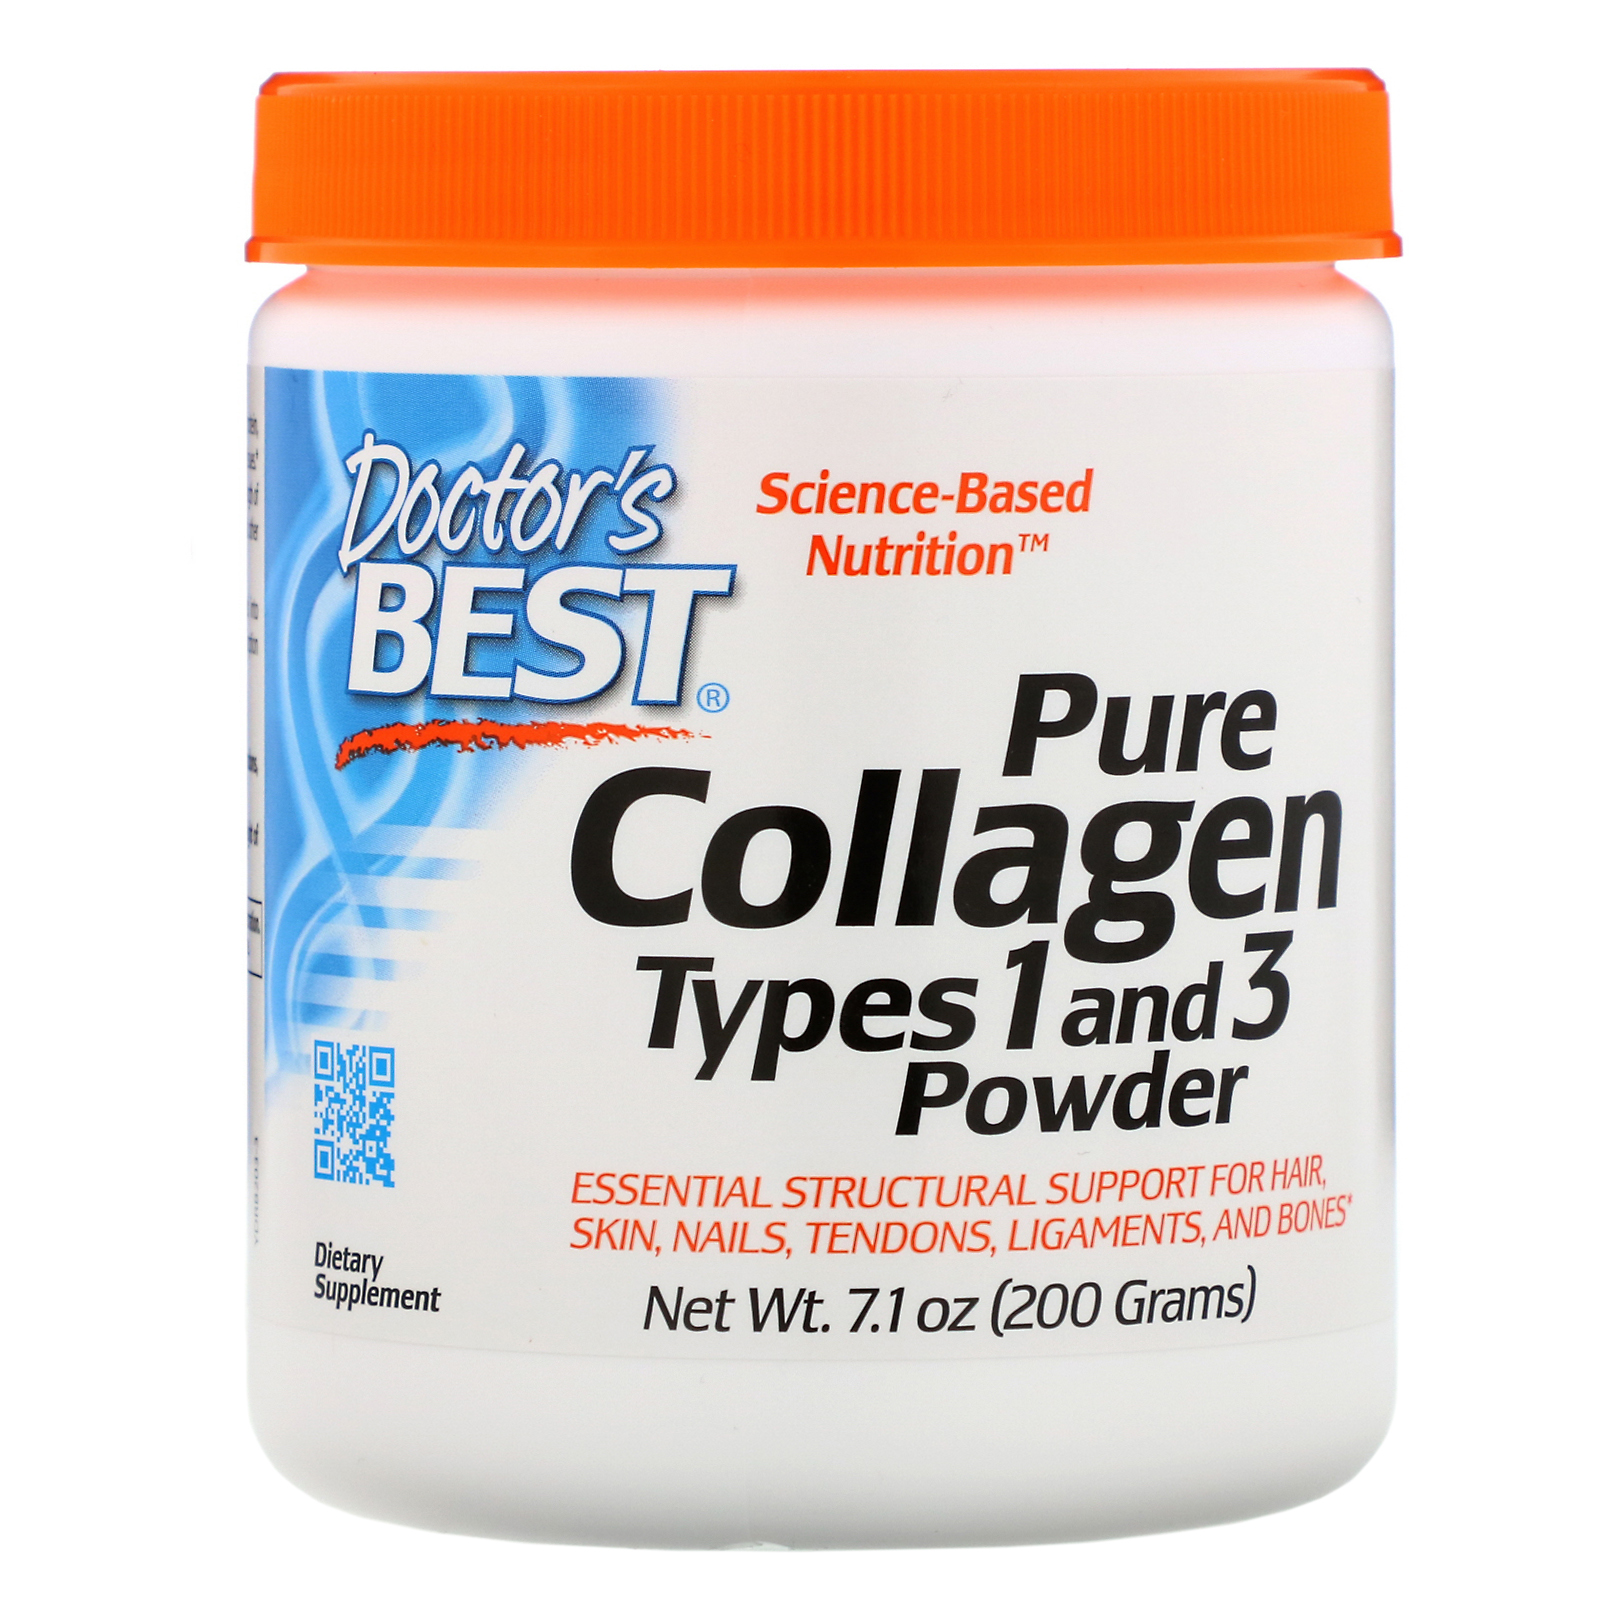 Doctor's Best, Pure Collagen Types 1 and 3 Powder, 7.1 oz (200 g) - Ultimate Sup